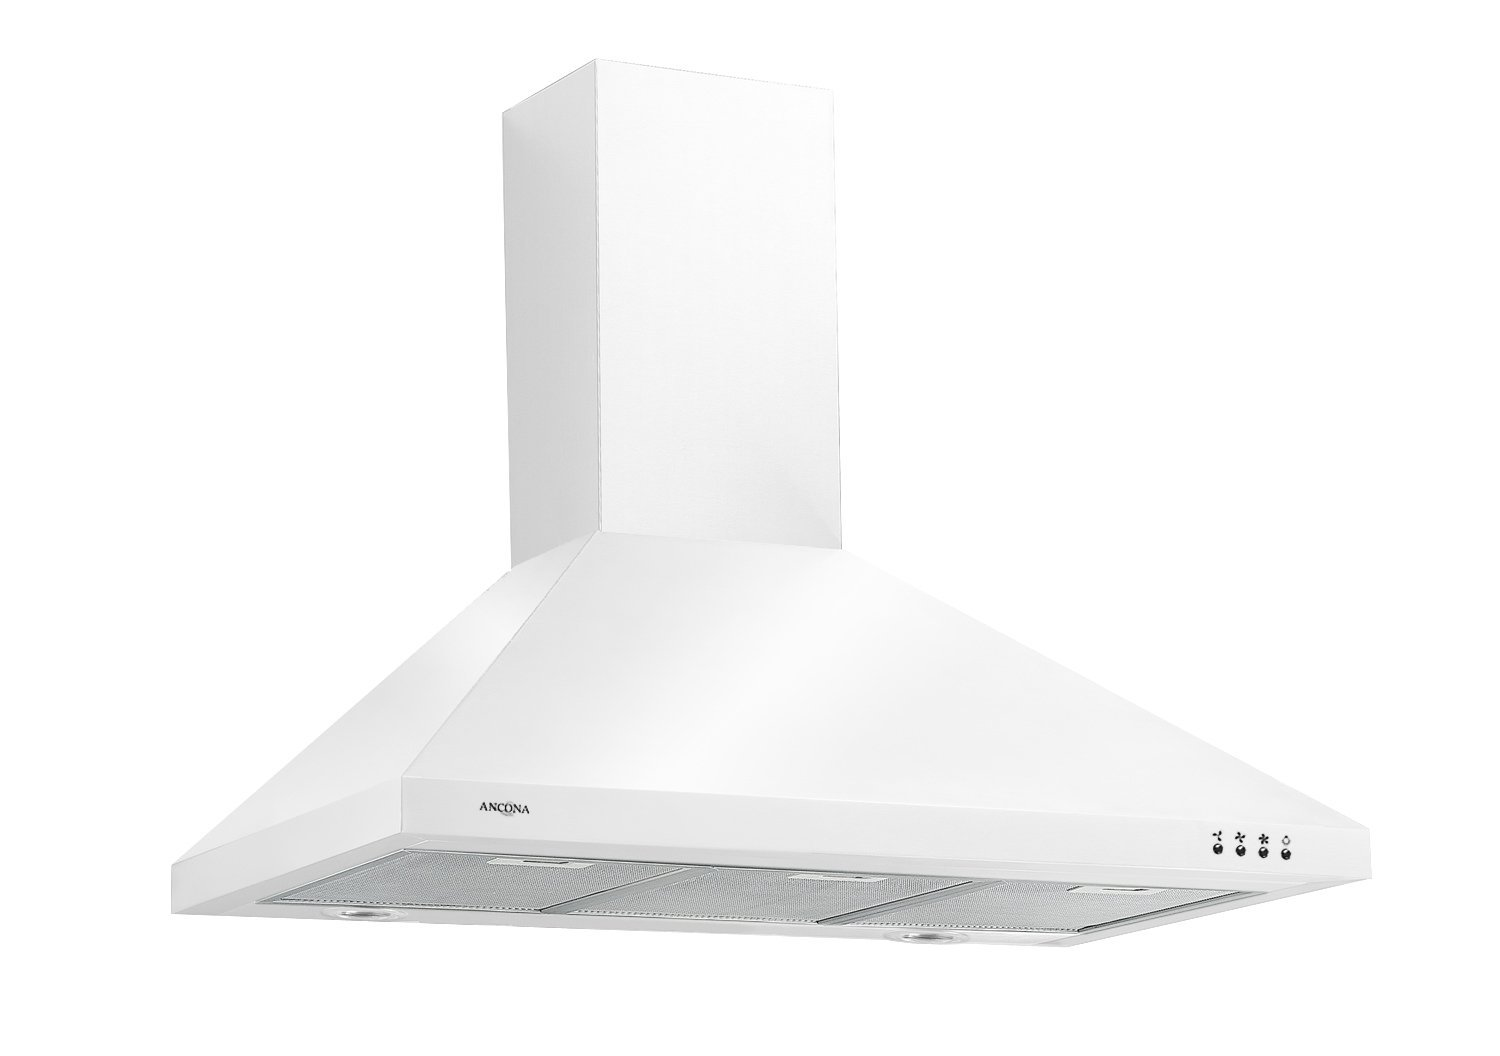 Ancona WPPW436 Wall-Mounted Classic Pyramid Style Convertible Range Hood, 36-Inch, White